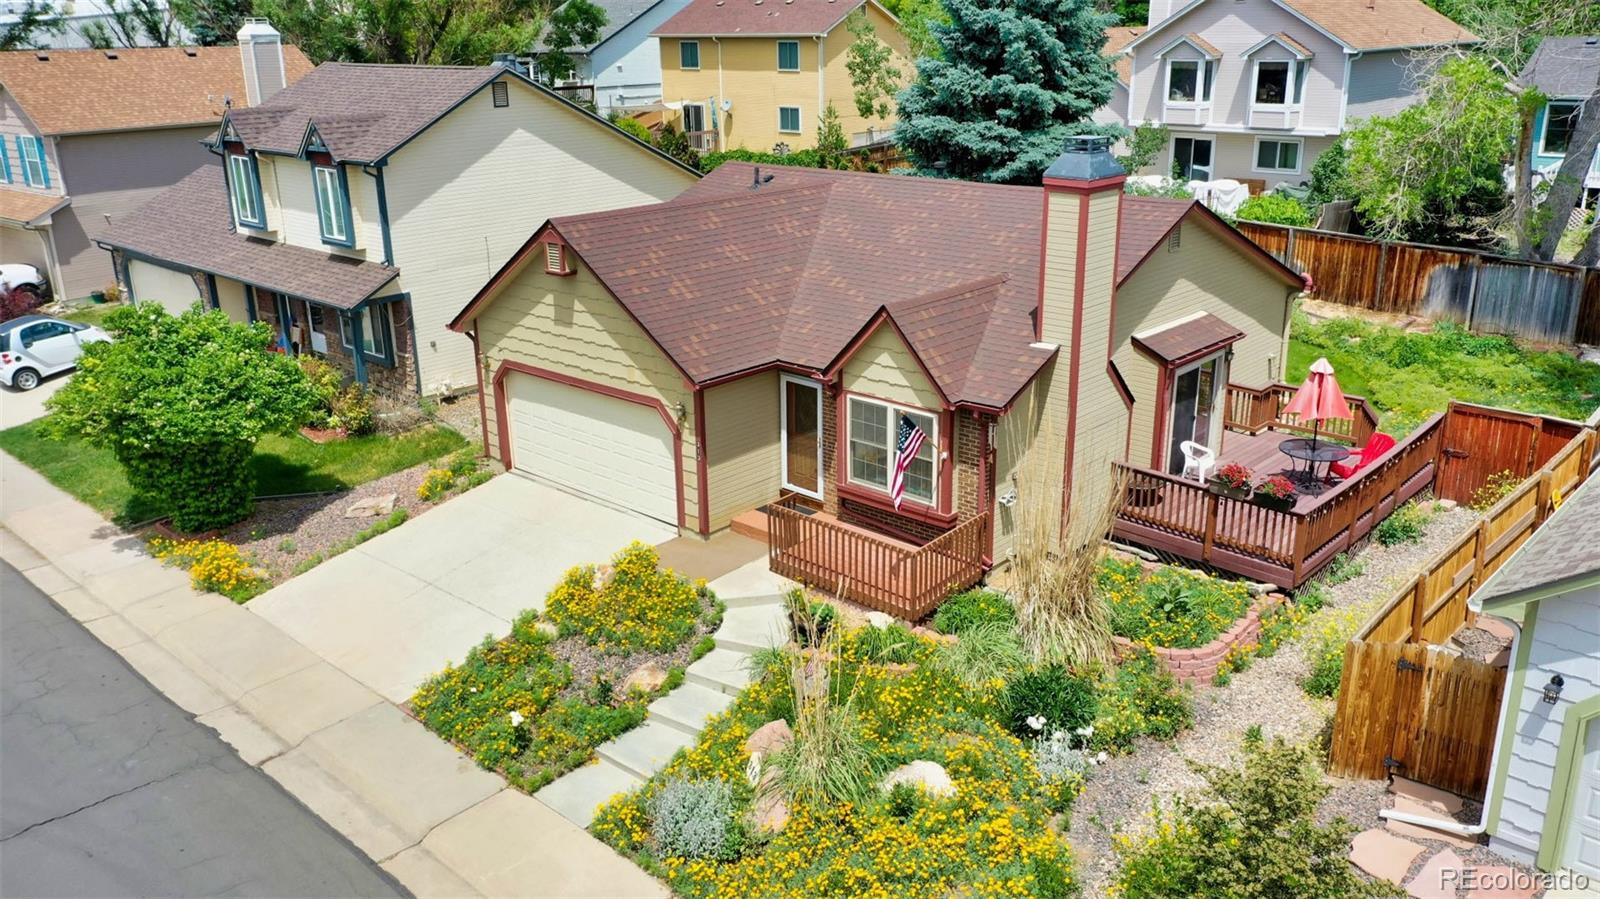 MLS# 3885943 - 4 - 313 Mulberry Circle, Broomfield, CO 80020